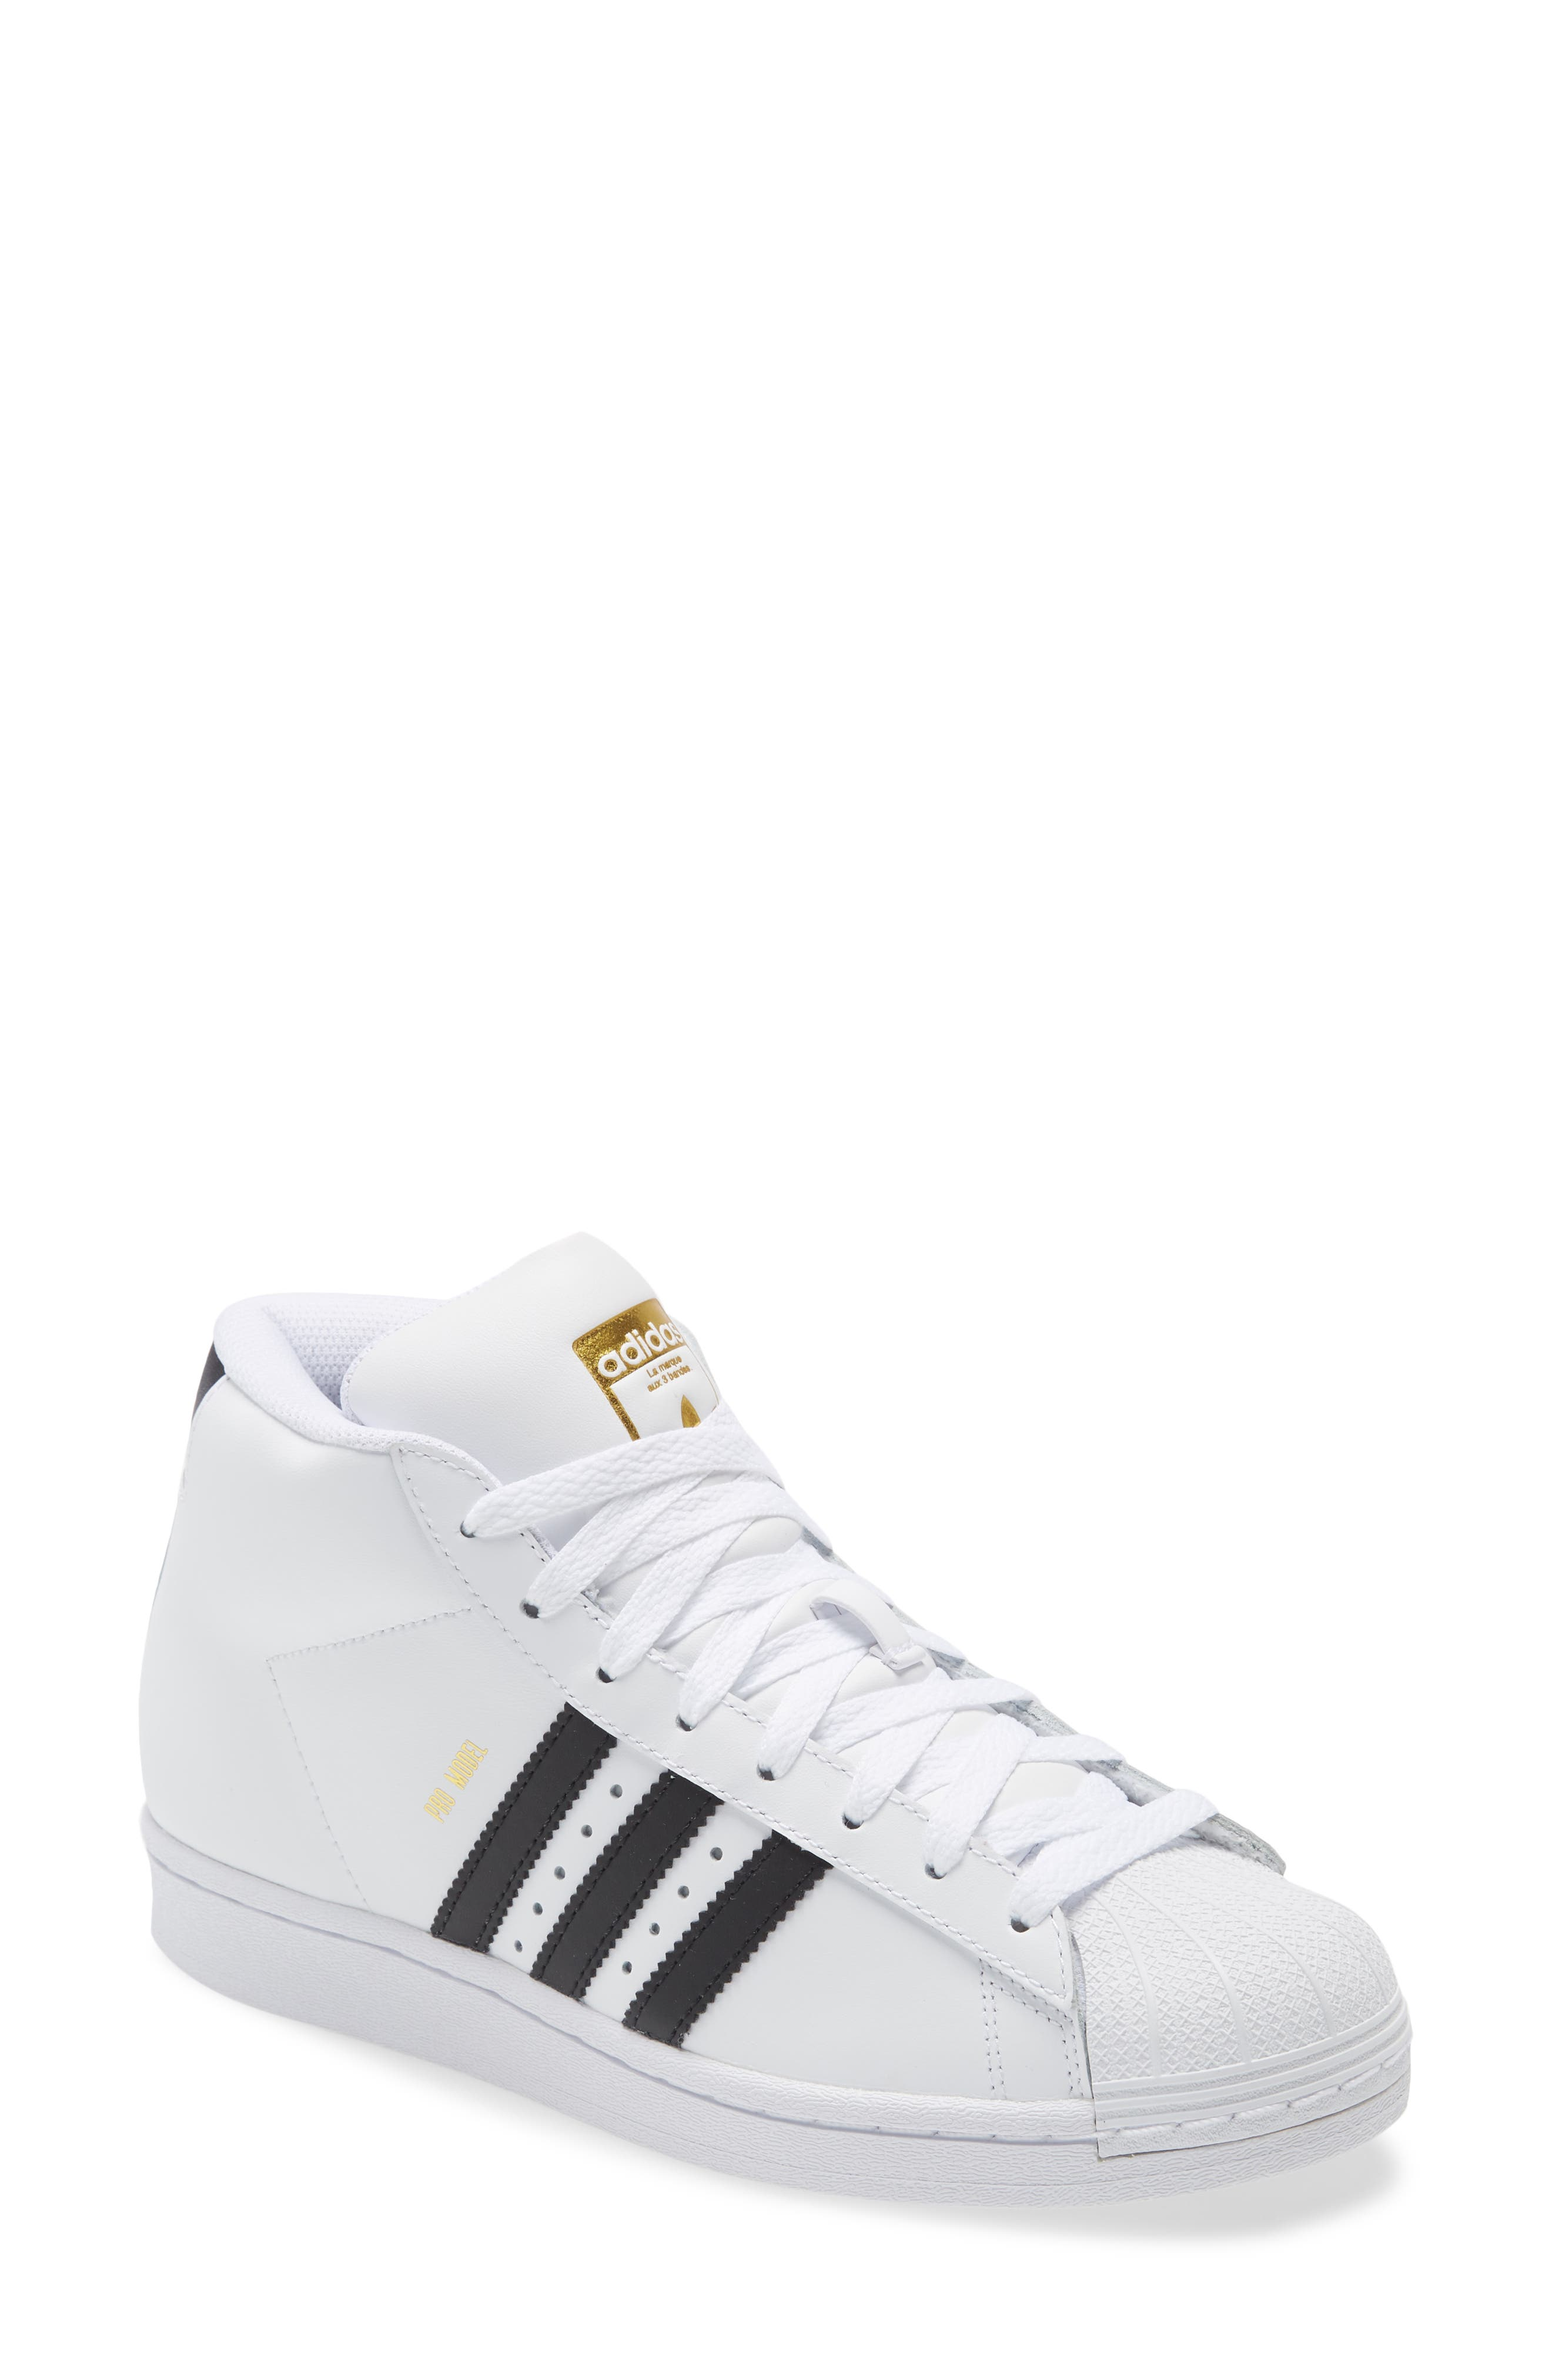 Kids' adidas Shoes | Nordstrom